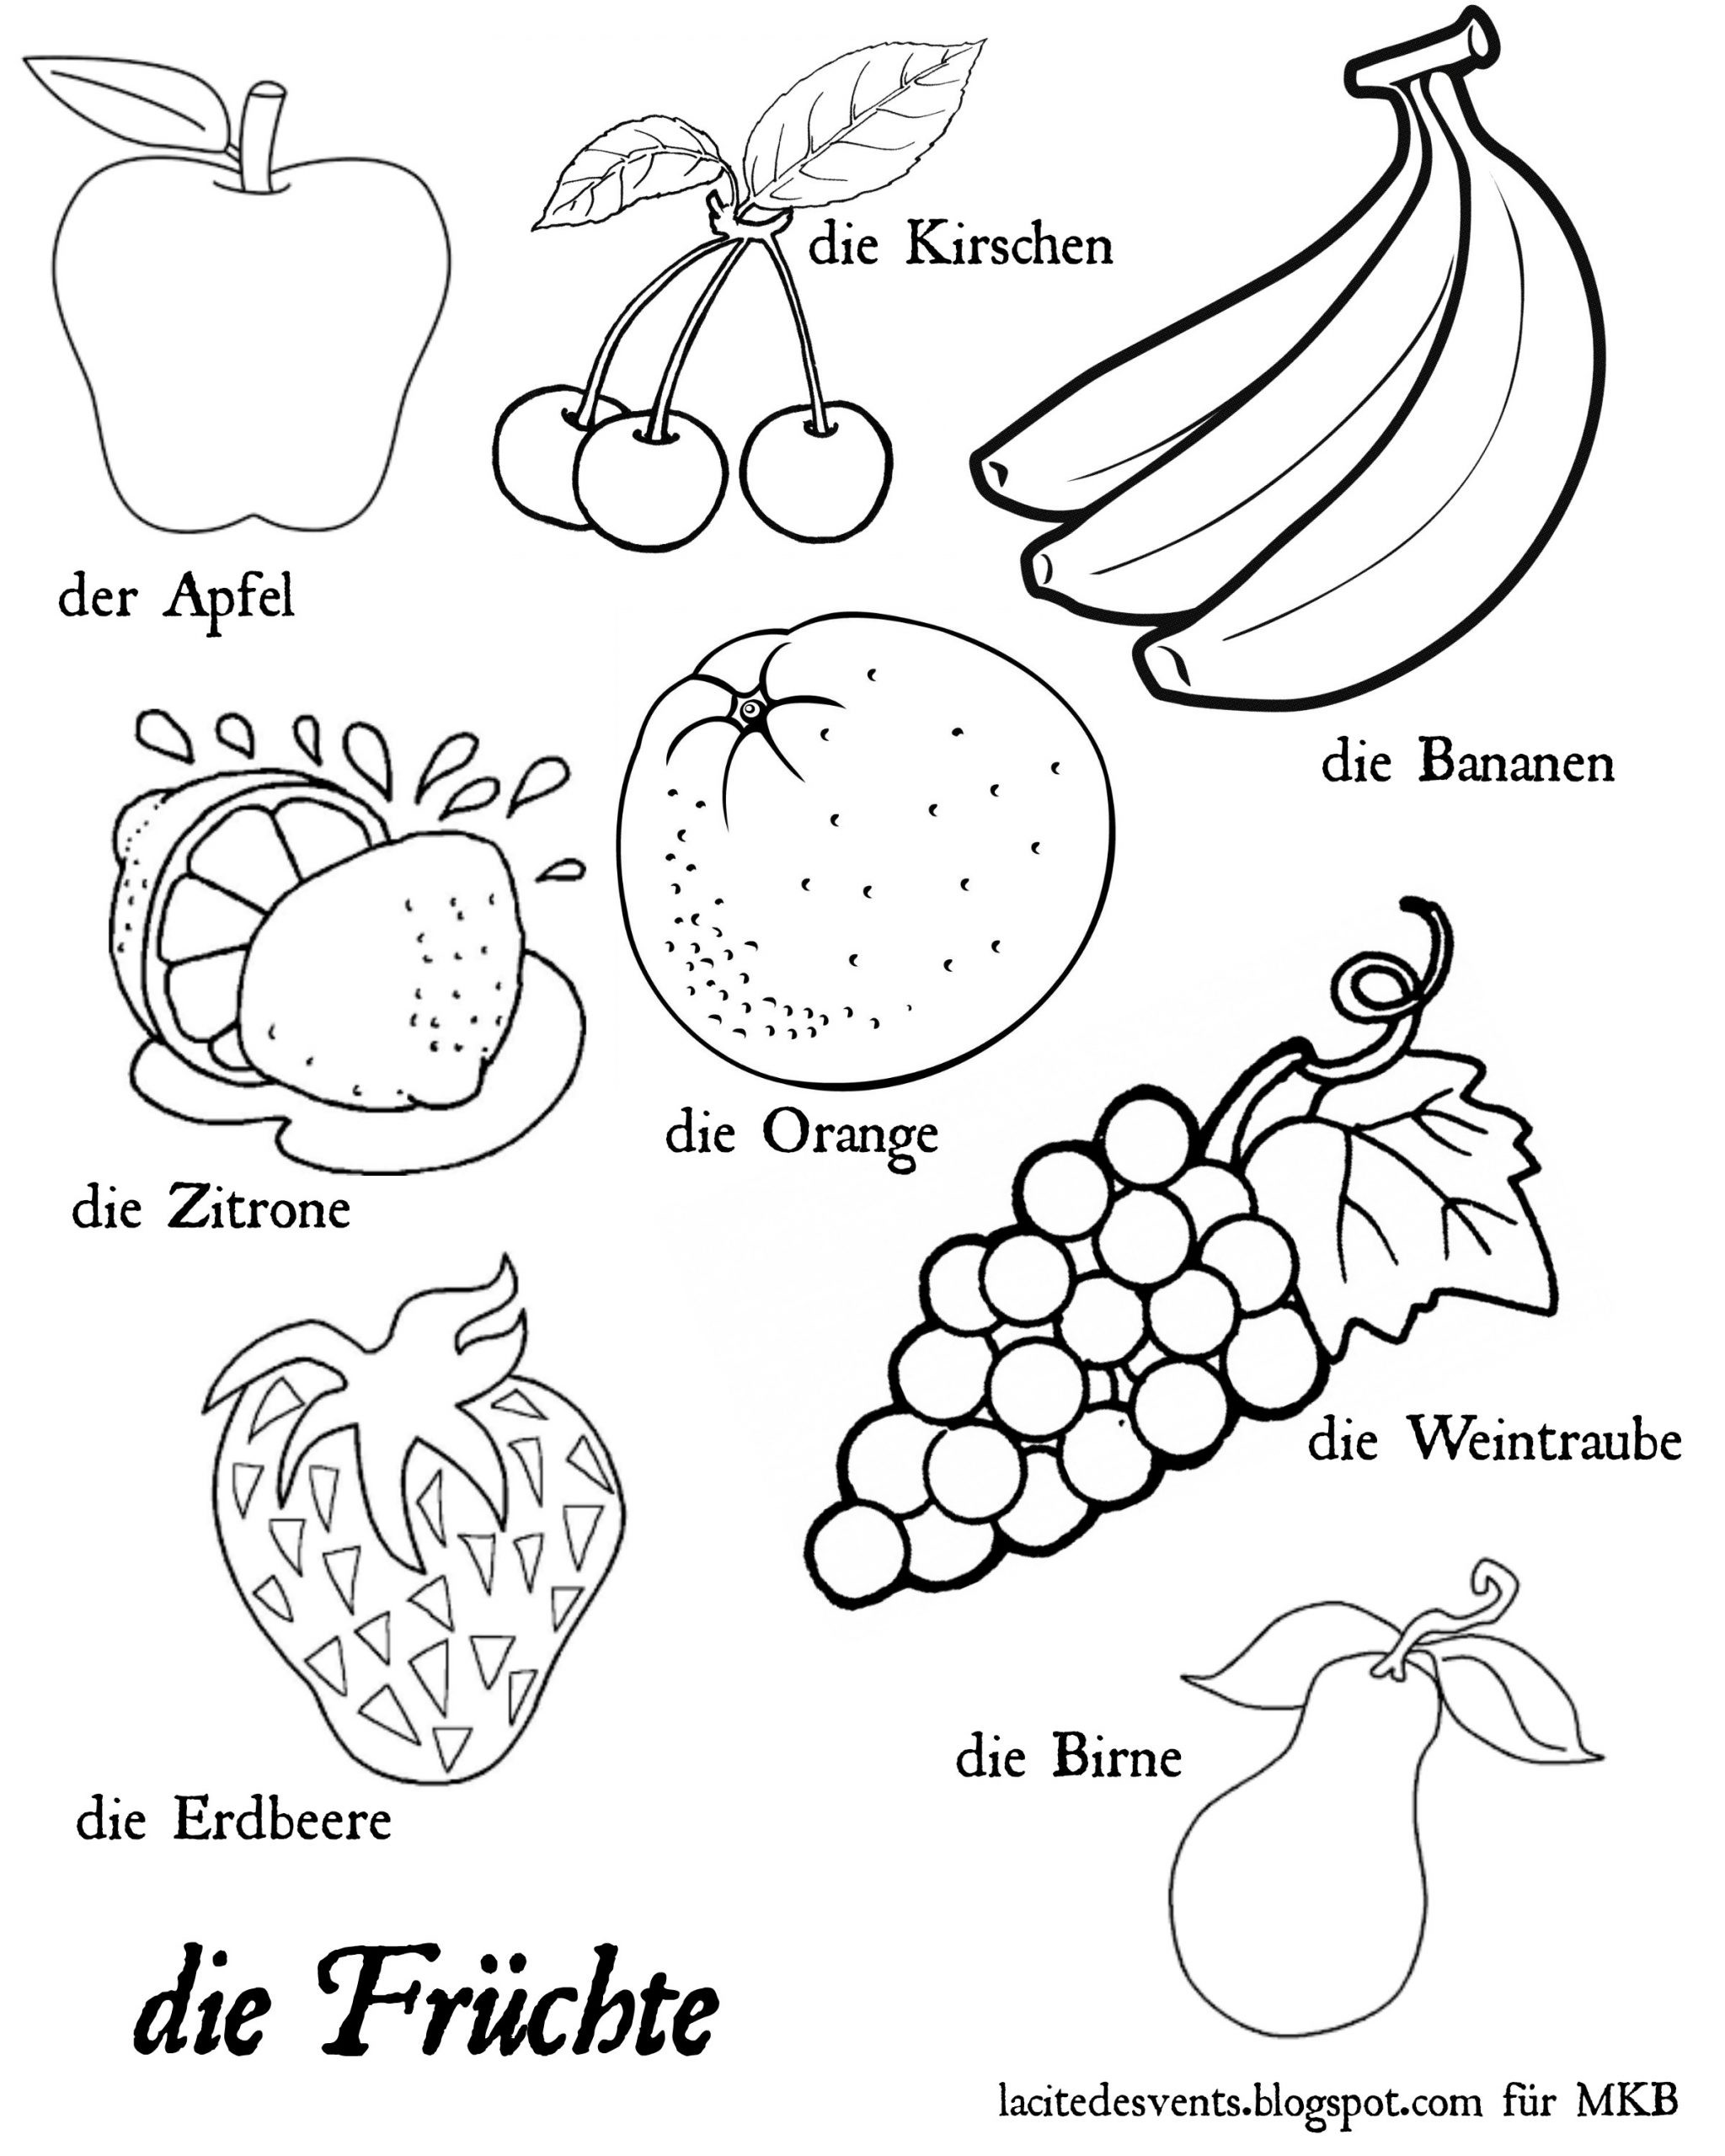 Preschool Fruits and Vegetables Worksheets Fruits German Multilingual Fruits and Ve Ables In